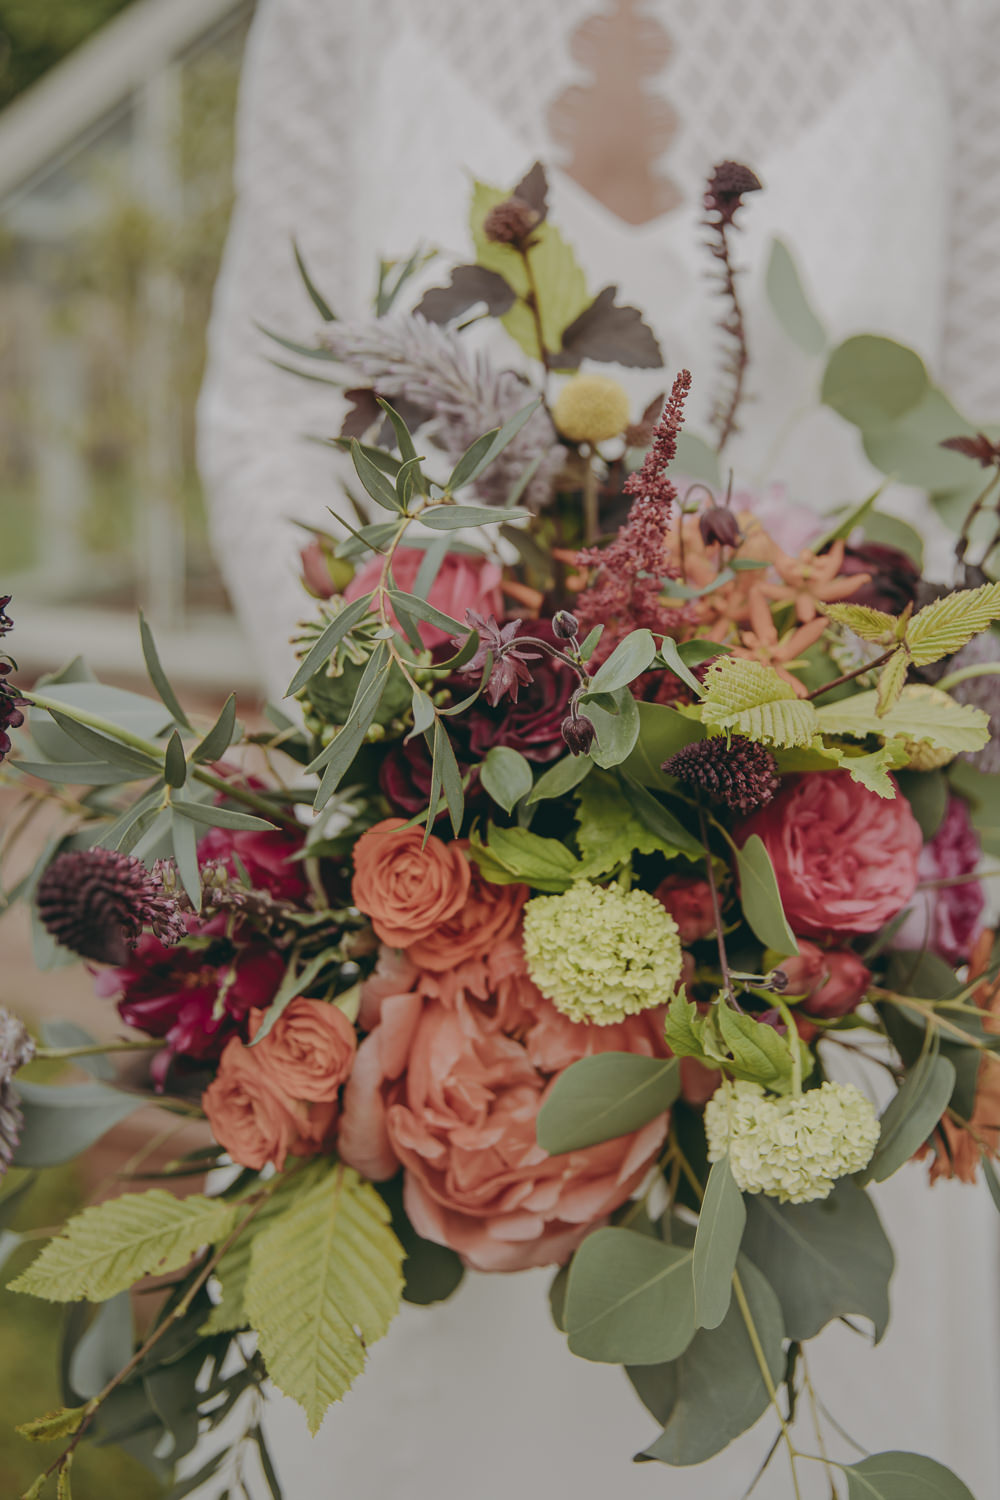 Bouquet Flowers Bride Bridal Coral Peony Rose Astilbe Plum Greenery Kent Marquee Wedding Lily Bungay and Co